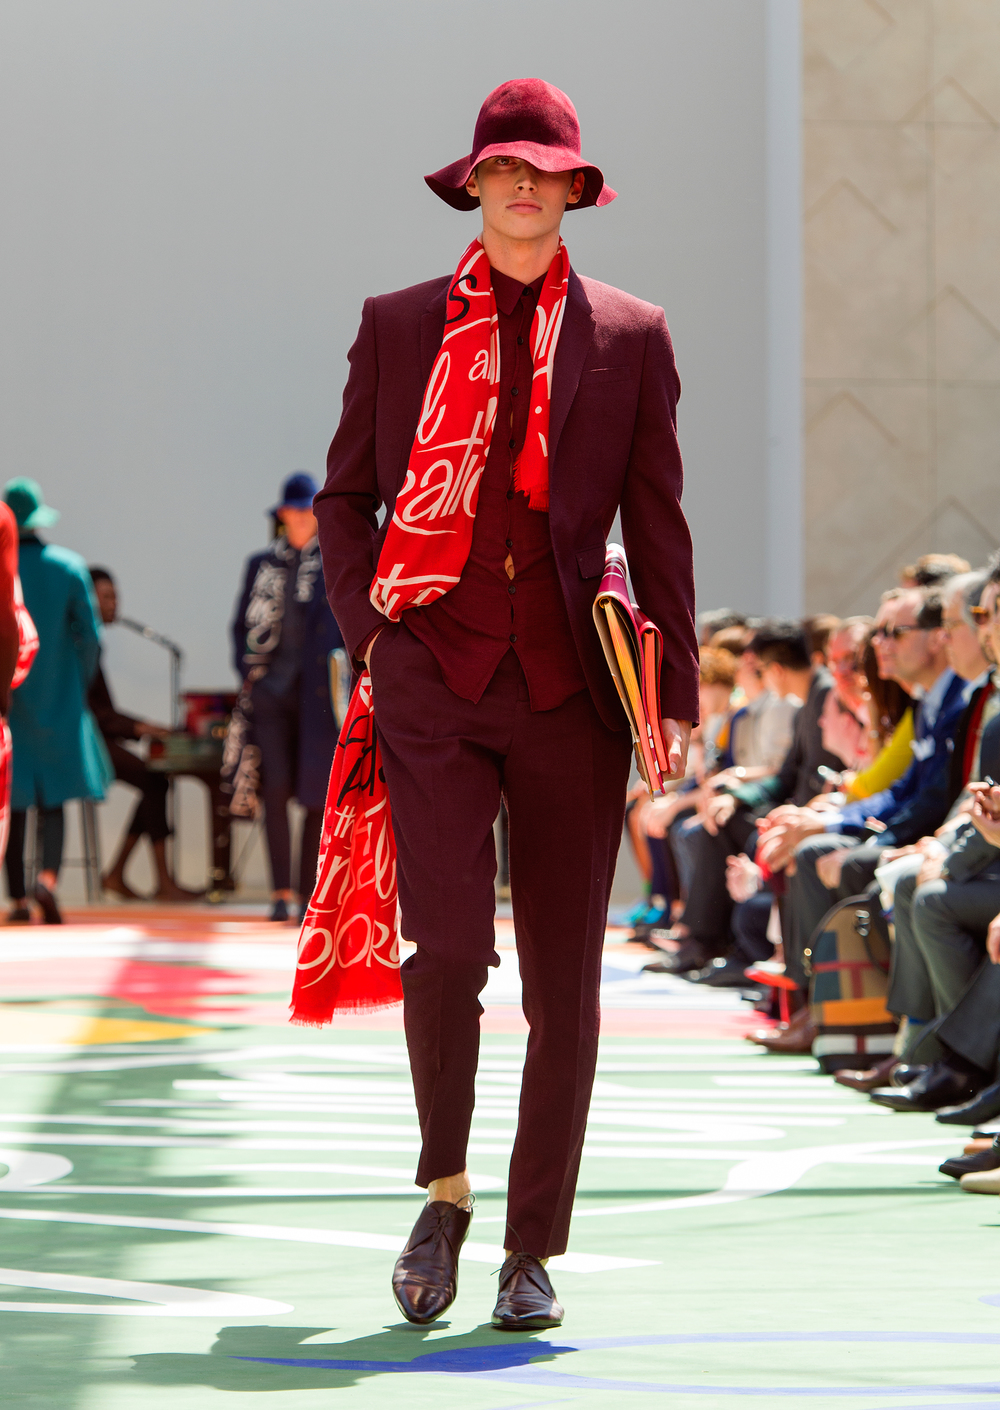 Burberry Prorsum Menswear Spring Summer 2015 Collection - Look 39.jpg